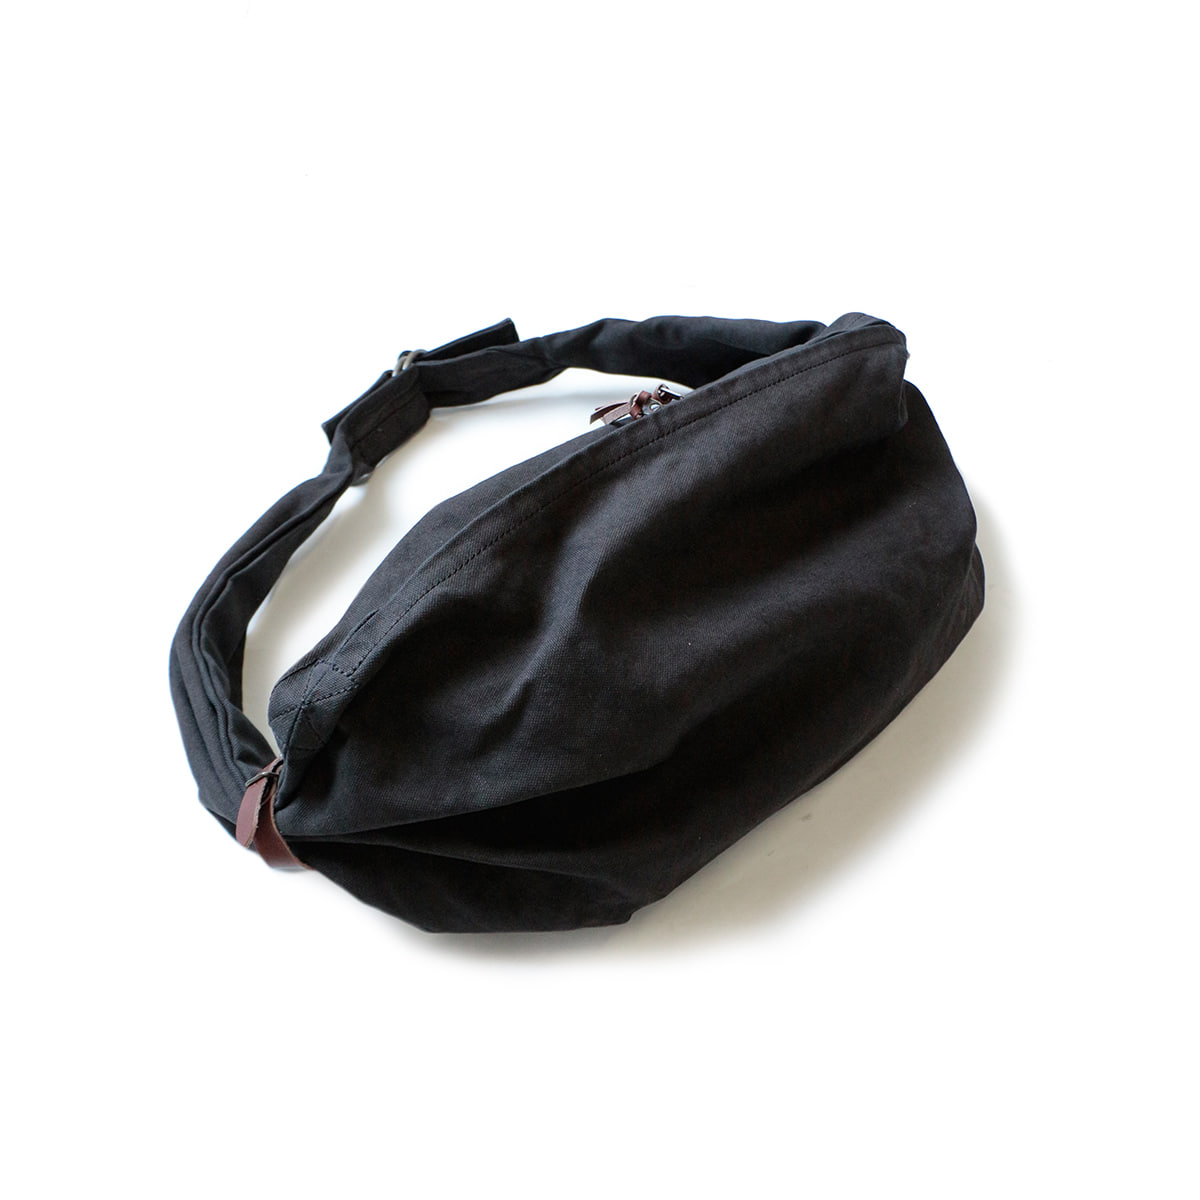 [KAPITAL] CANVAS SNUFKIN BAG 'BLK'